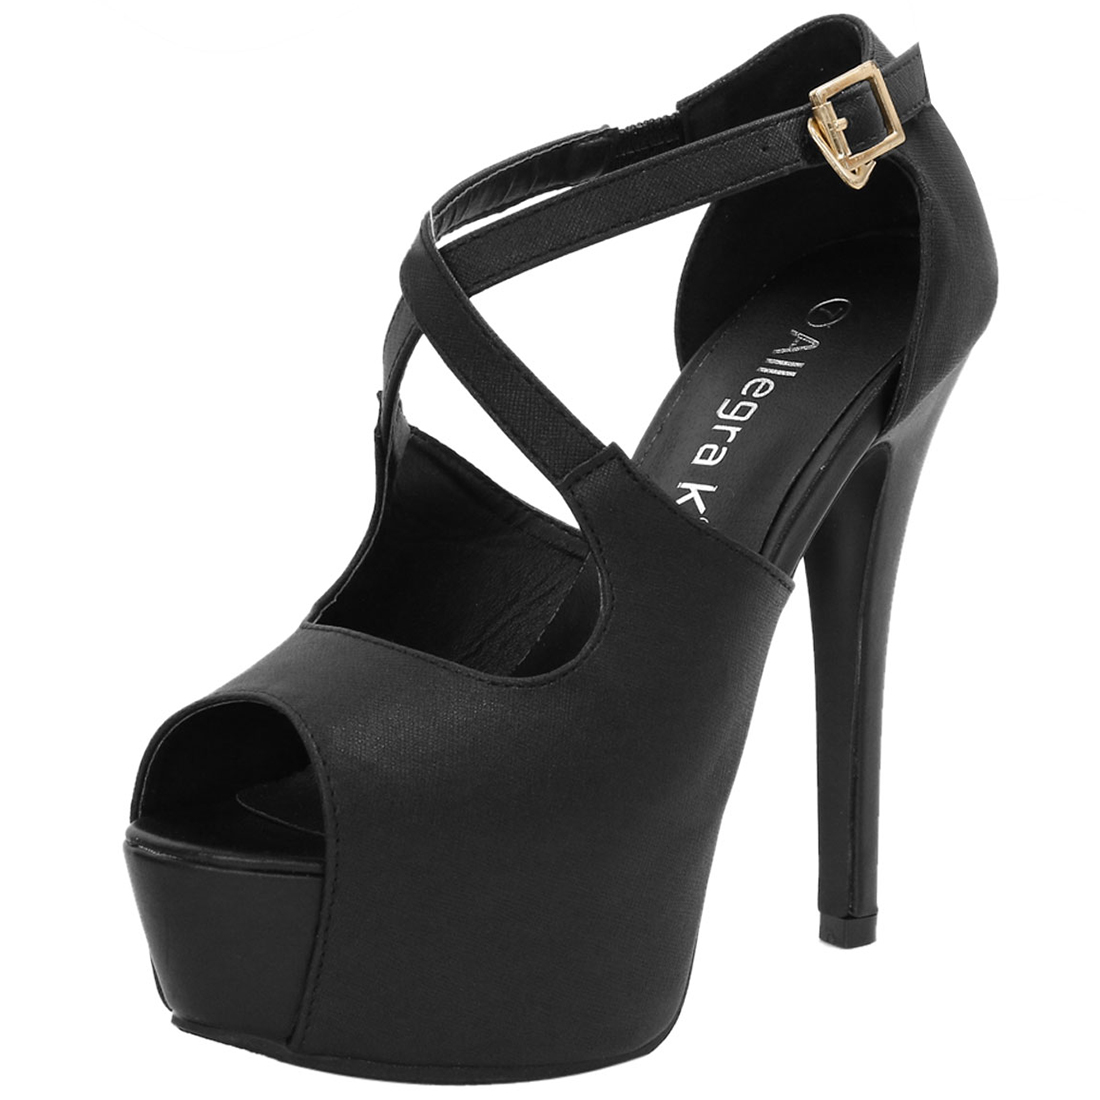 Woman Peep Toe High Heel Crisscross Straps Platform Sandals Black US 7.5